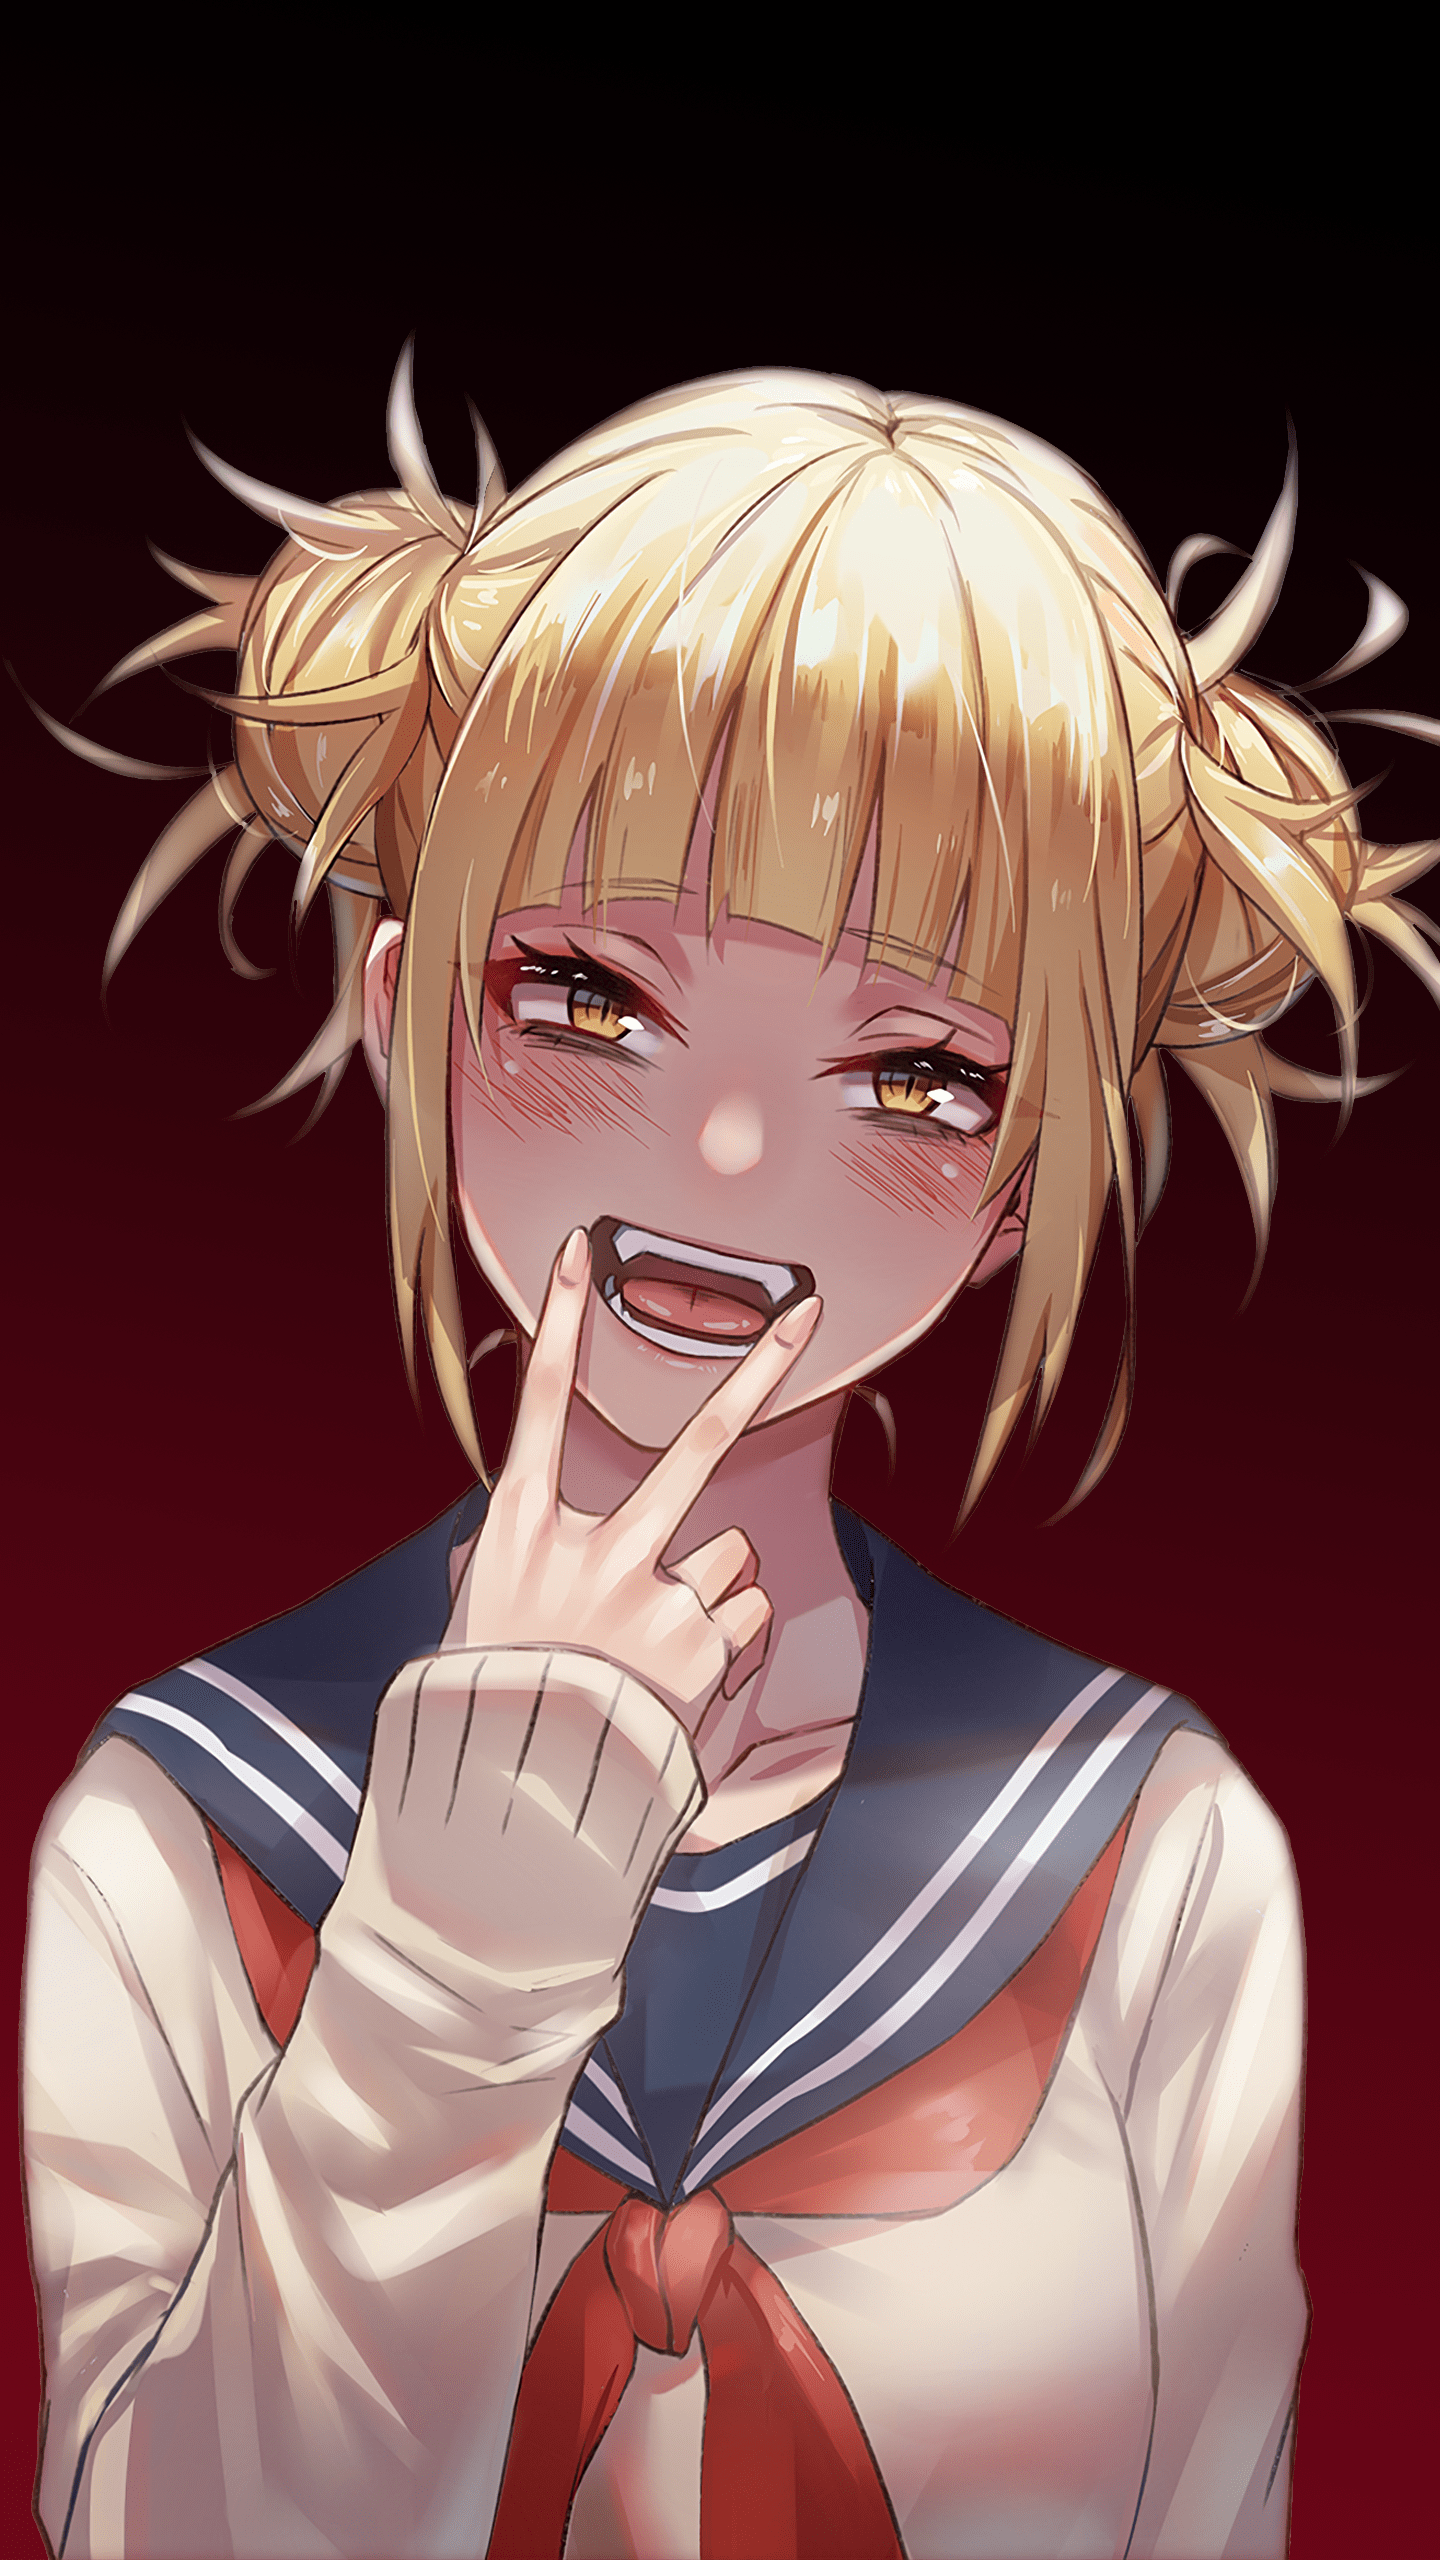 146 himiko toga hd wallpapers. Toga Wallpapers on WallpaperDog